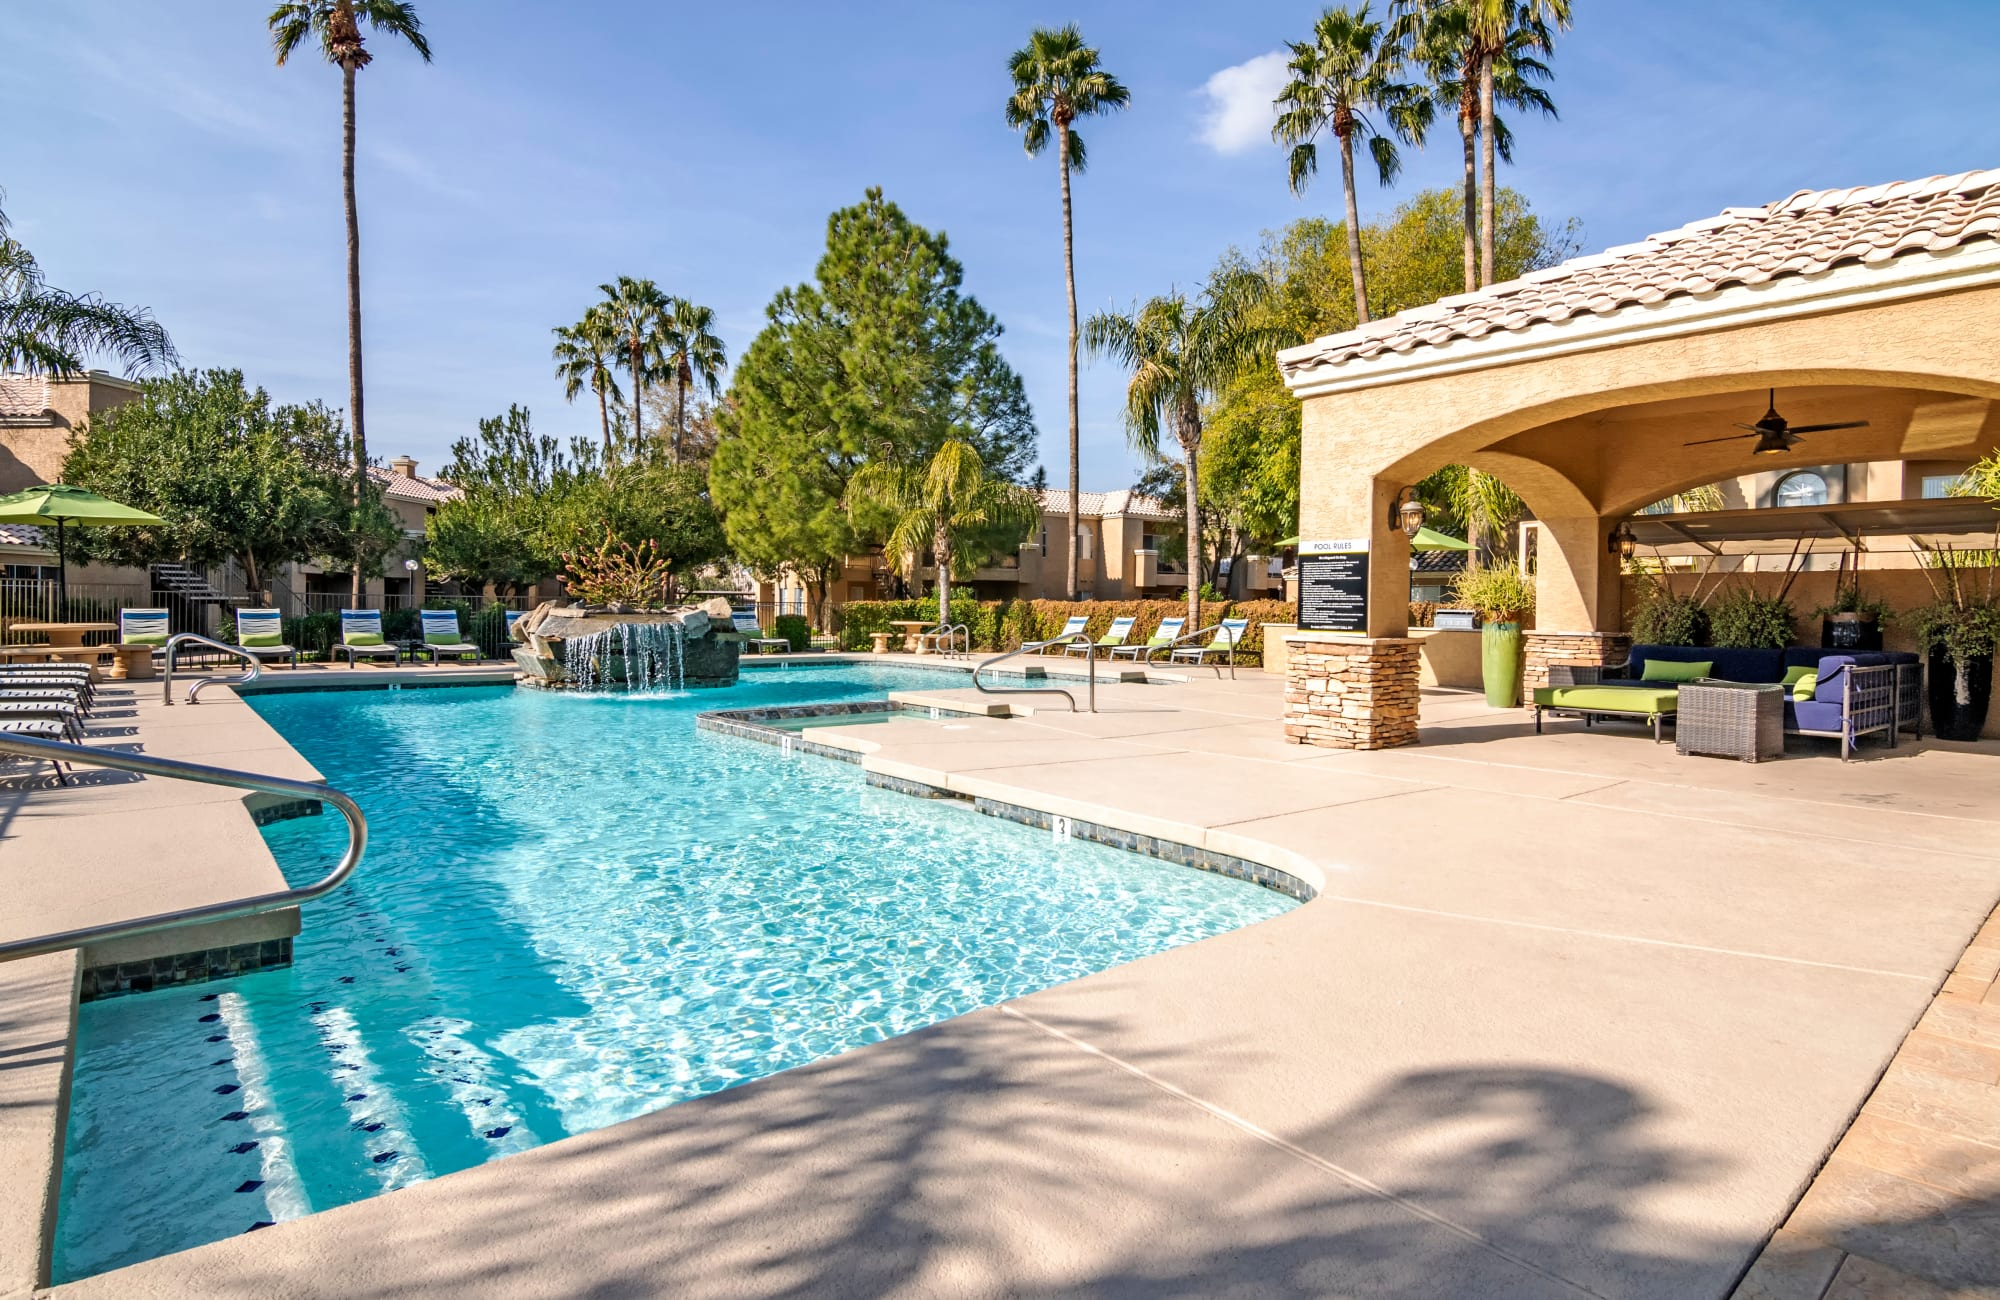 Swimming pool at The Boulevard in Phoenix, Arizona